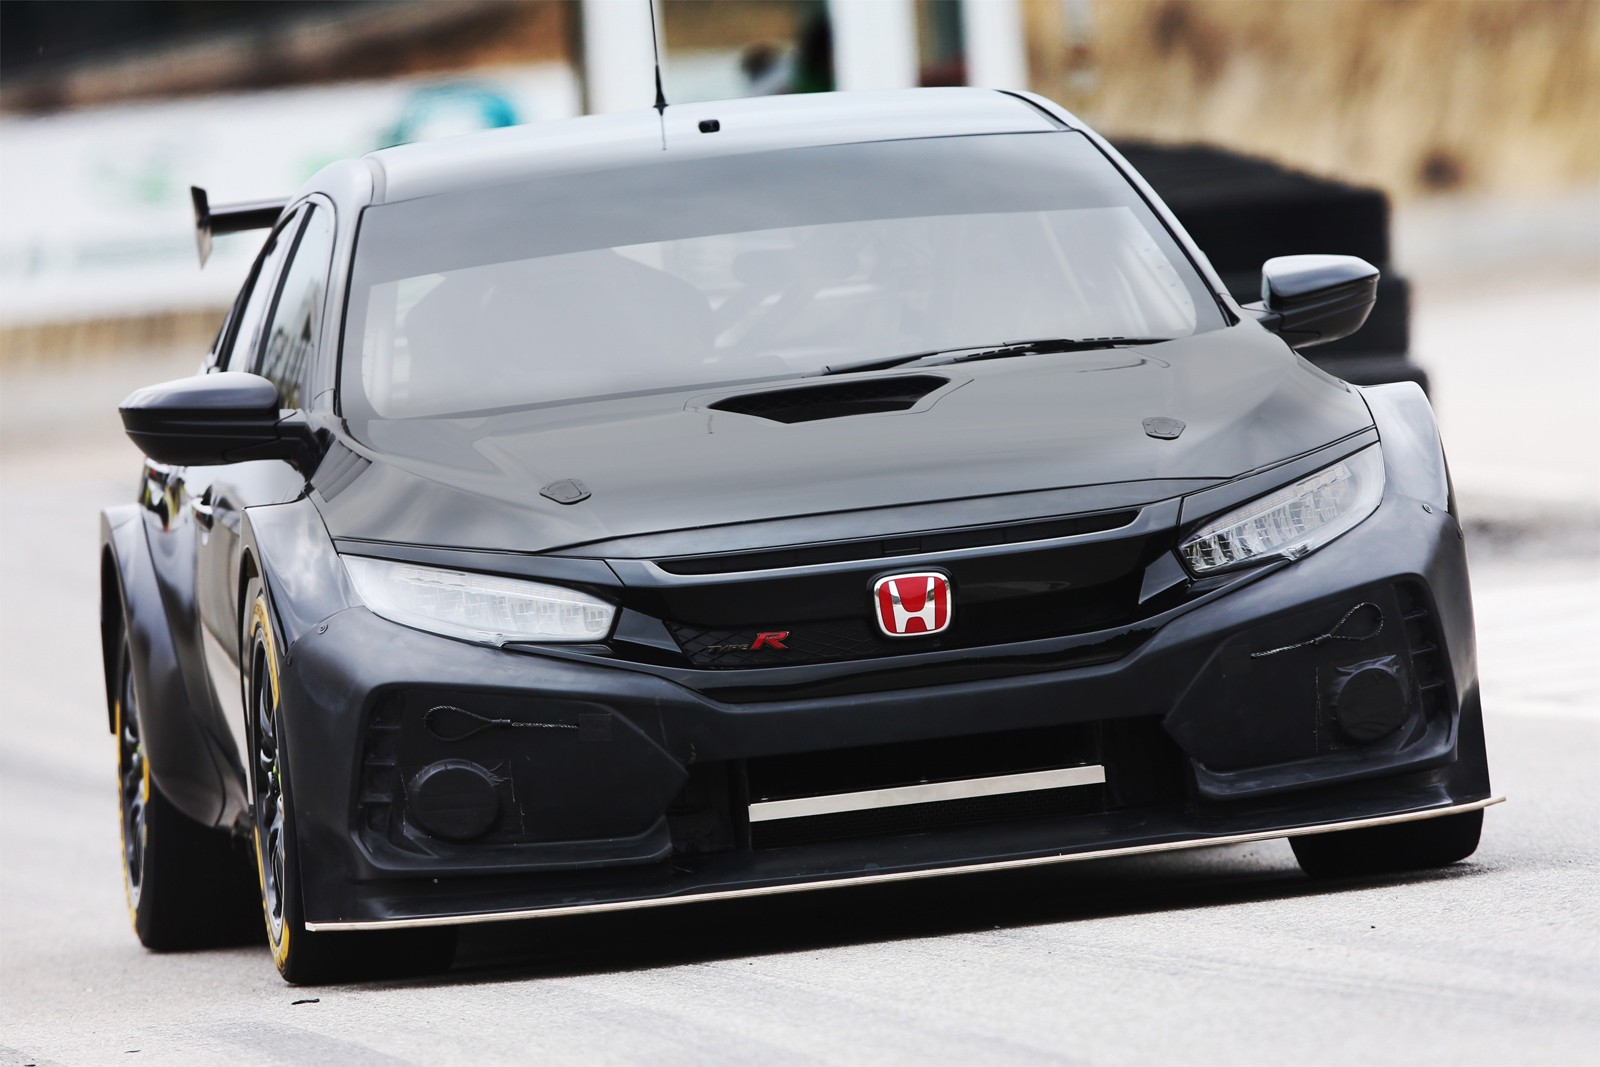 The Honda FK8 Civic Type R Touring Race Car Makes You Want to Hide Your Kids - autoevolution